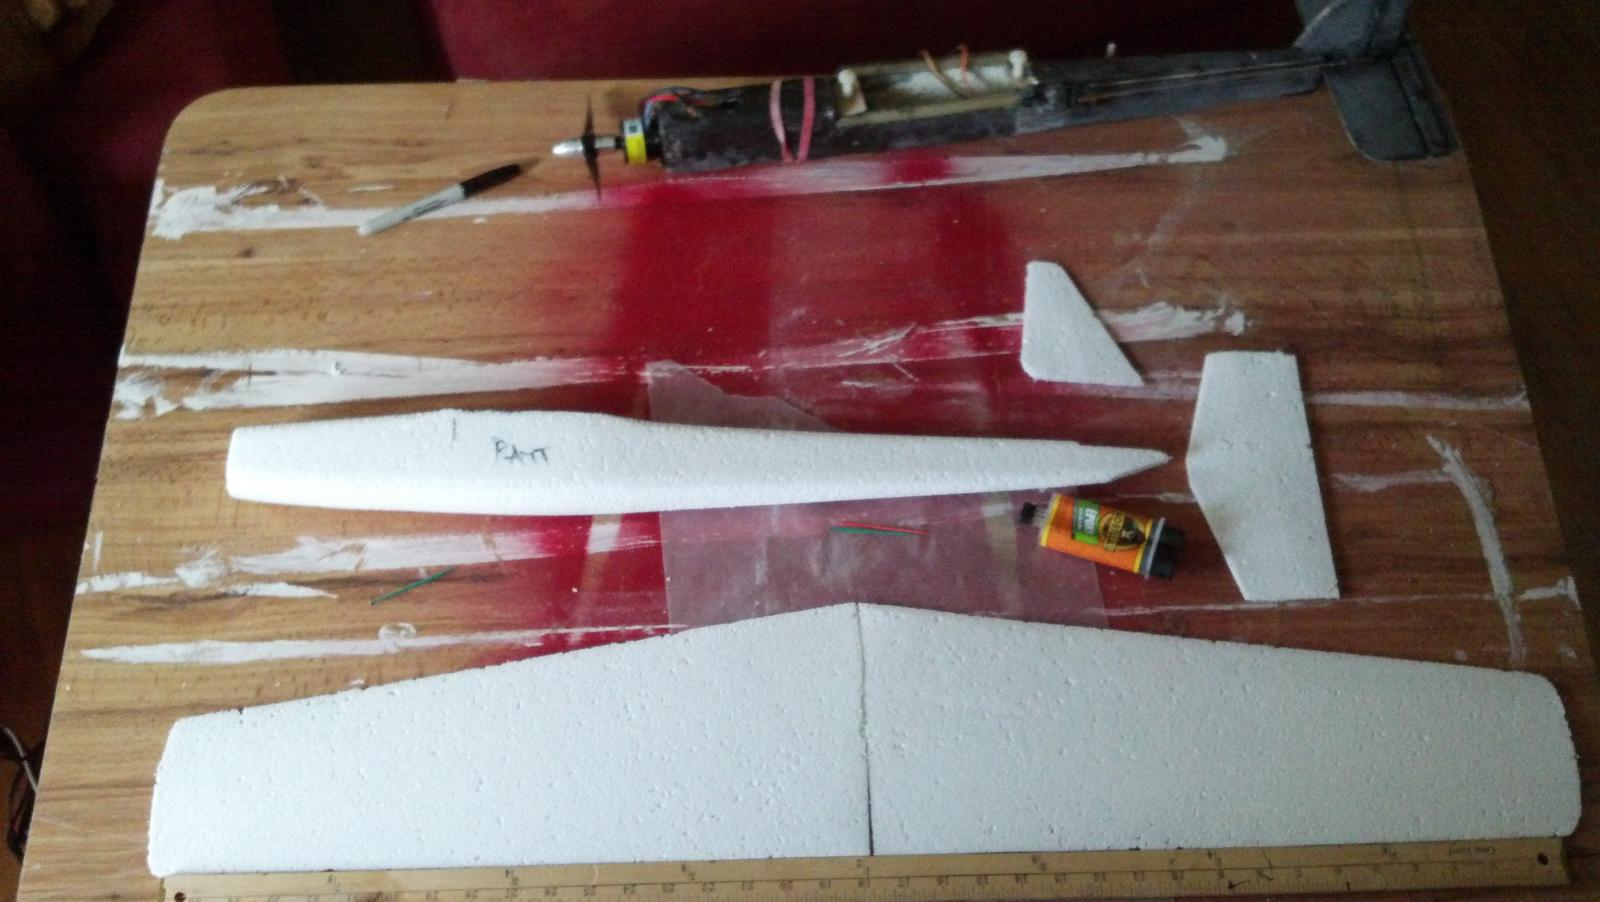 Shaped foam, ready for layup. You can see the prototype above the foam... flew good as long as you keep the speed up, stalled reallllyyy easily due to a poorly built wing [yes I built it :) ]